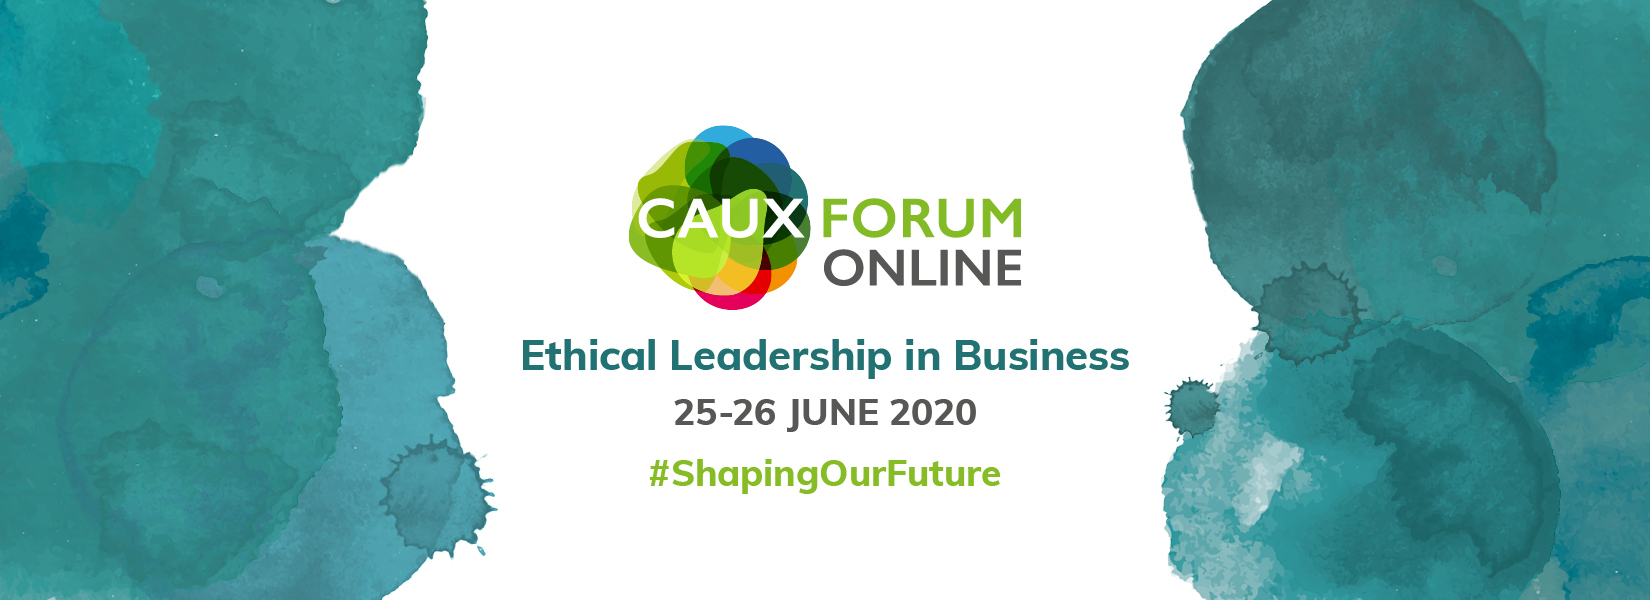 Ethical Leadership In Business Iofc